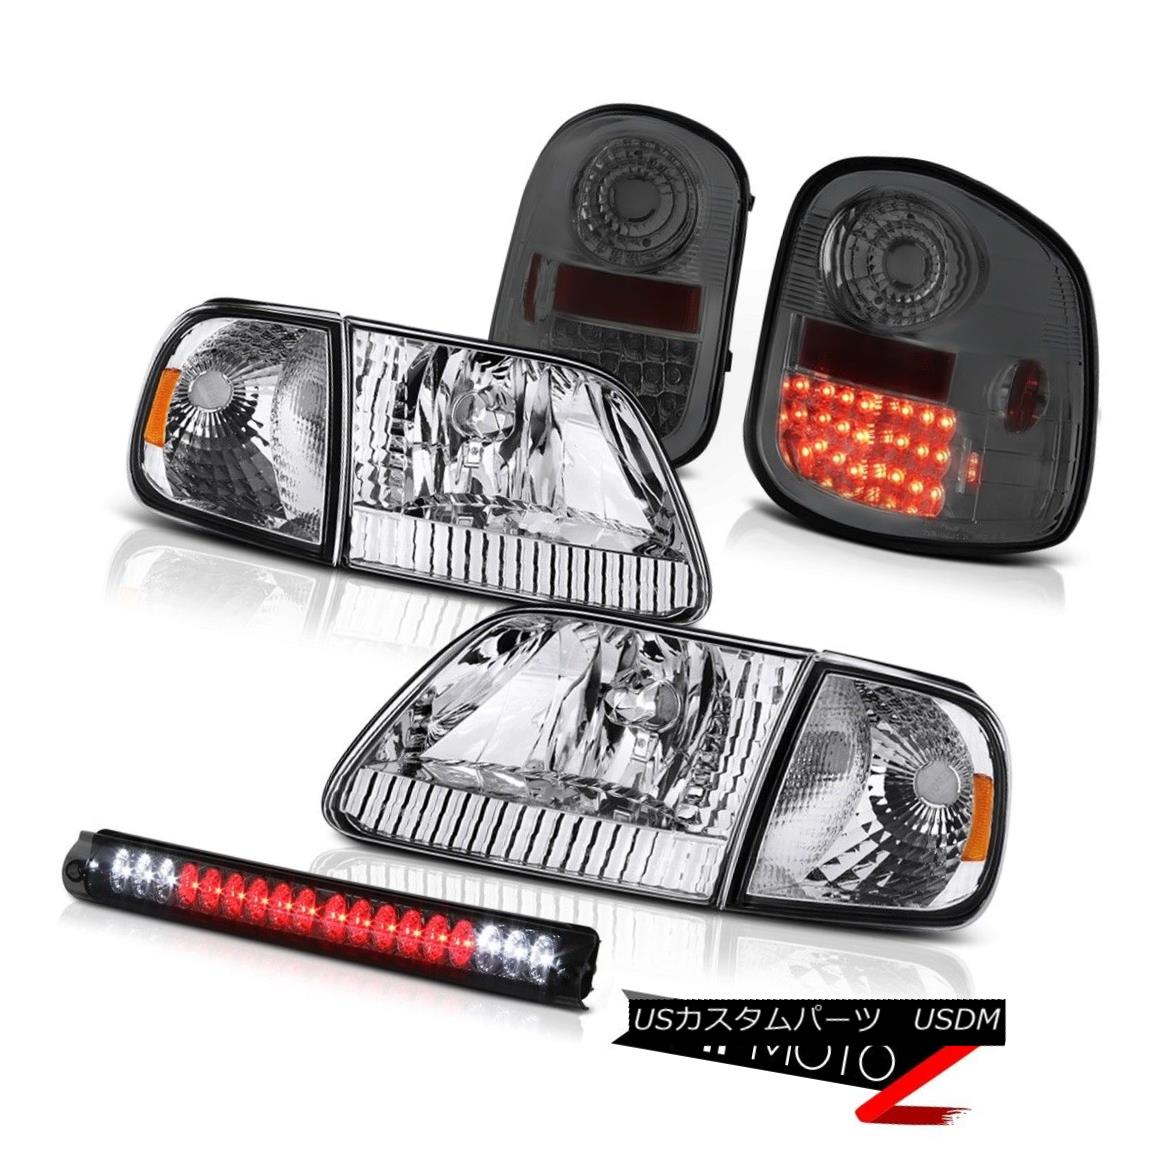 テールライト Euro Chrome Headlights Smoke LED Tail Lights High Stop 97-03 Ford F150 Flareside ユーロクロームヘッドライトスモークLEDテールライトハイストップ97-03 Ford F150 Flareside